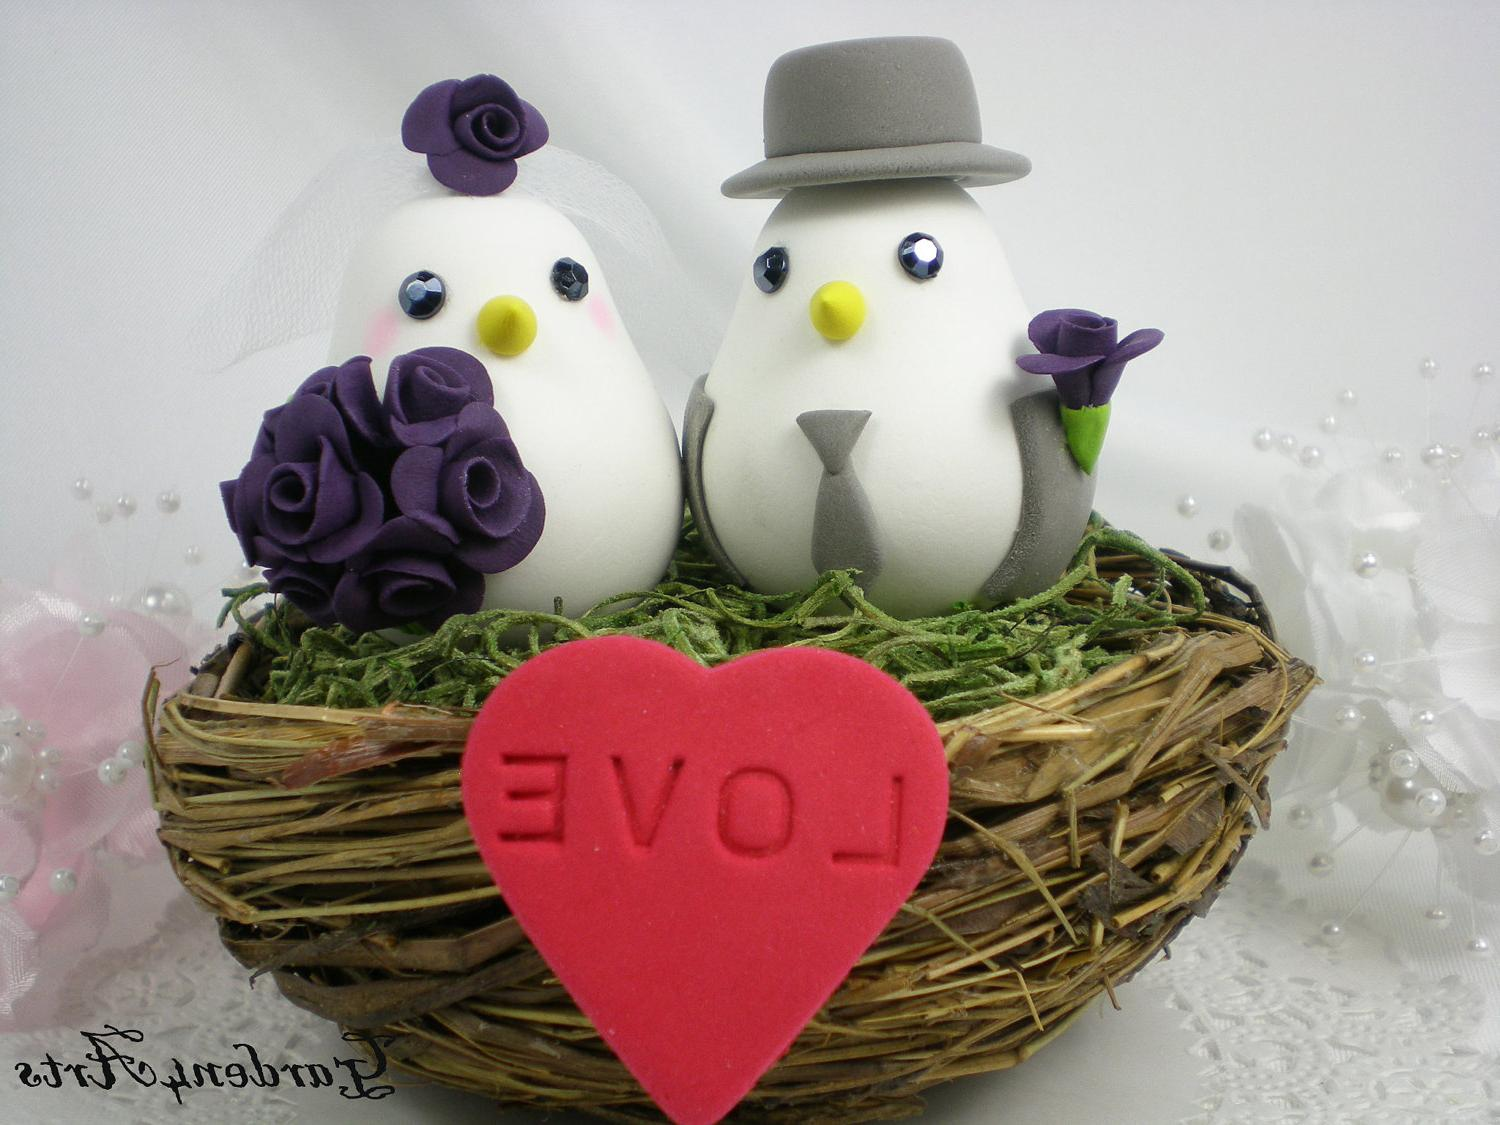 Love Birds Wedding Cake Topper with Sweet Floral Nest Choice Color